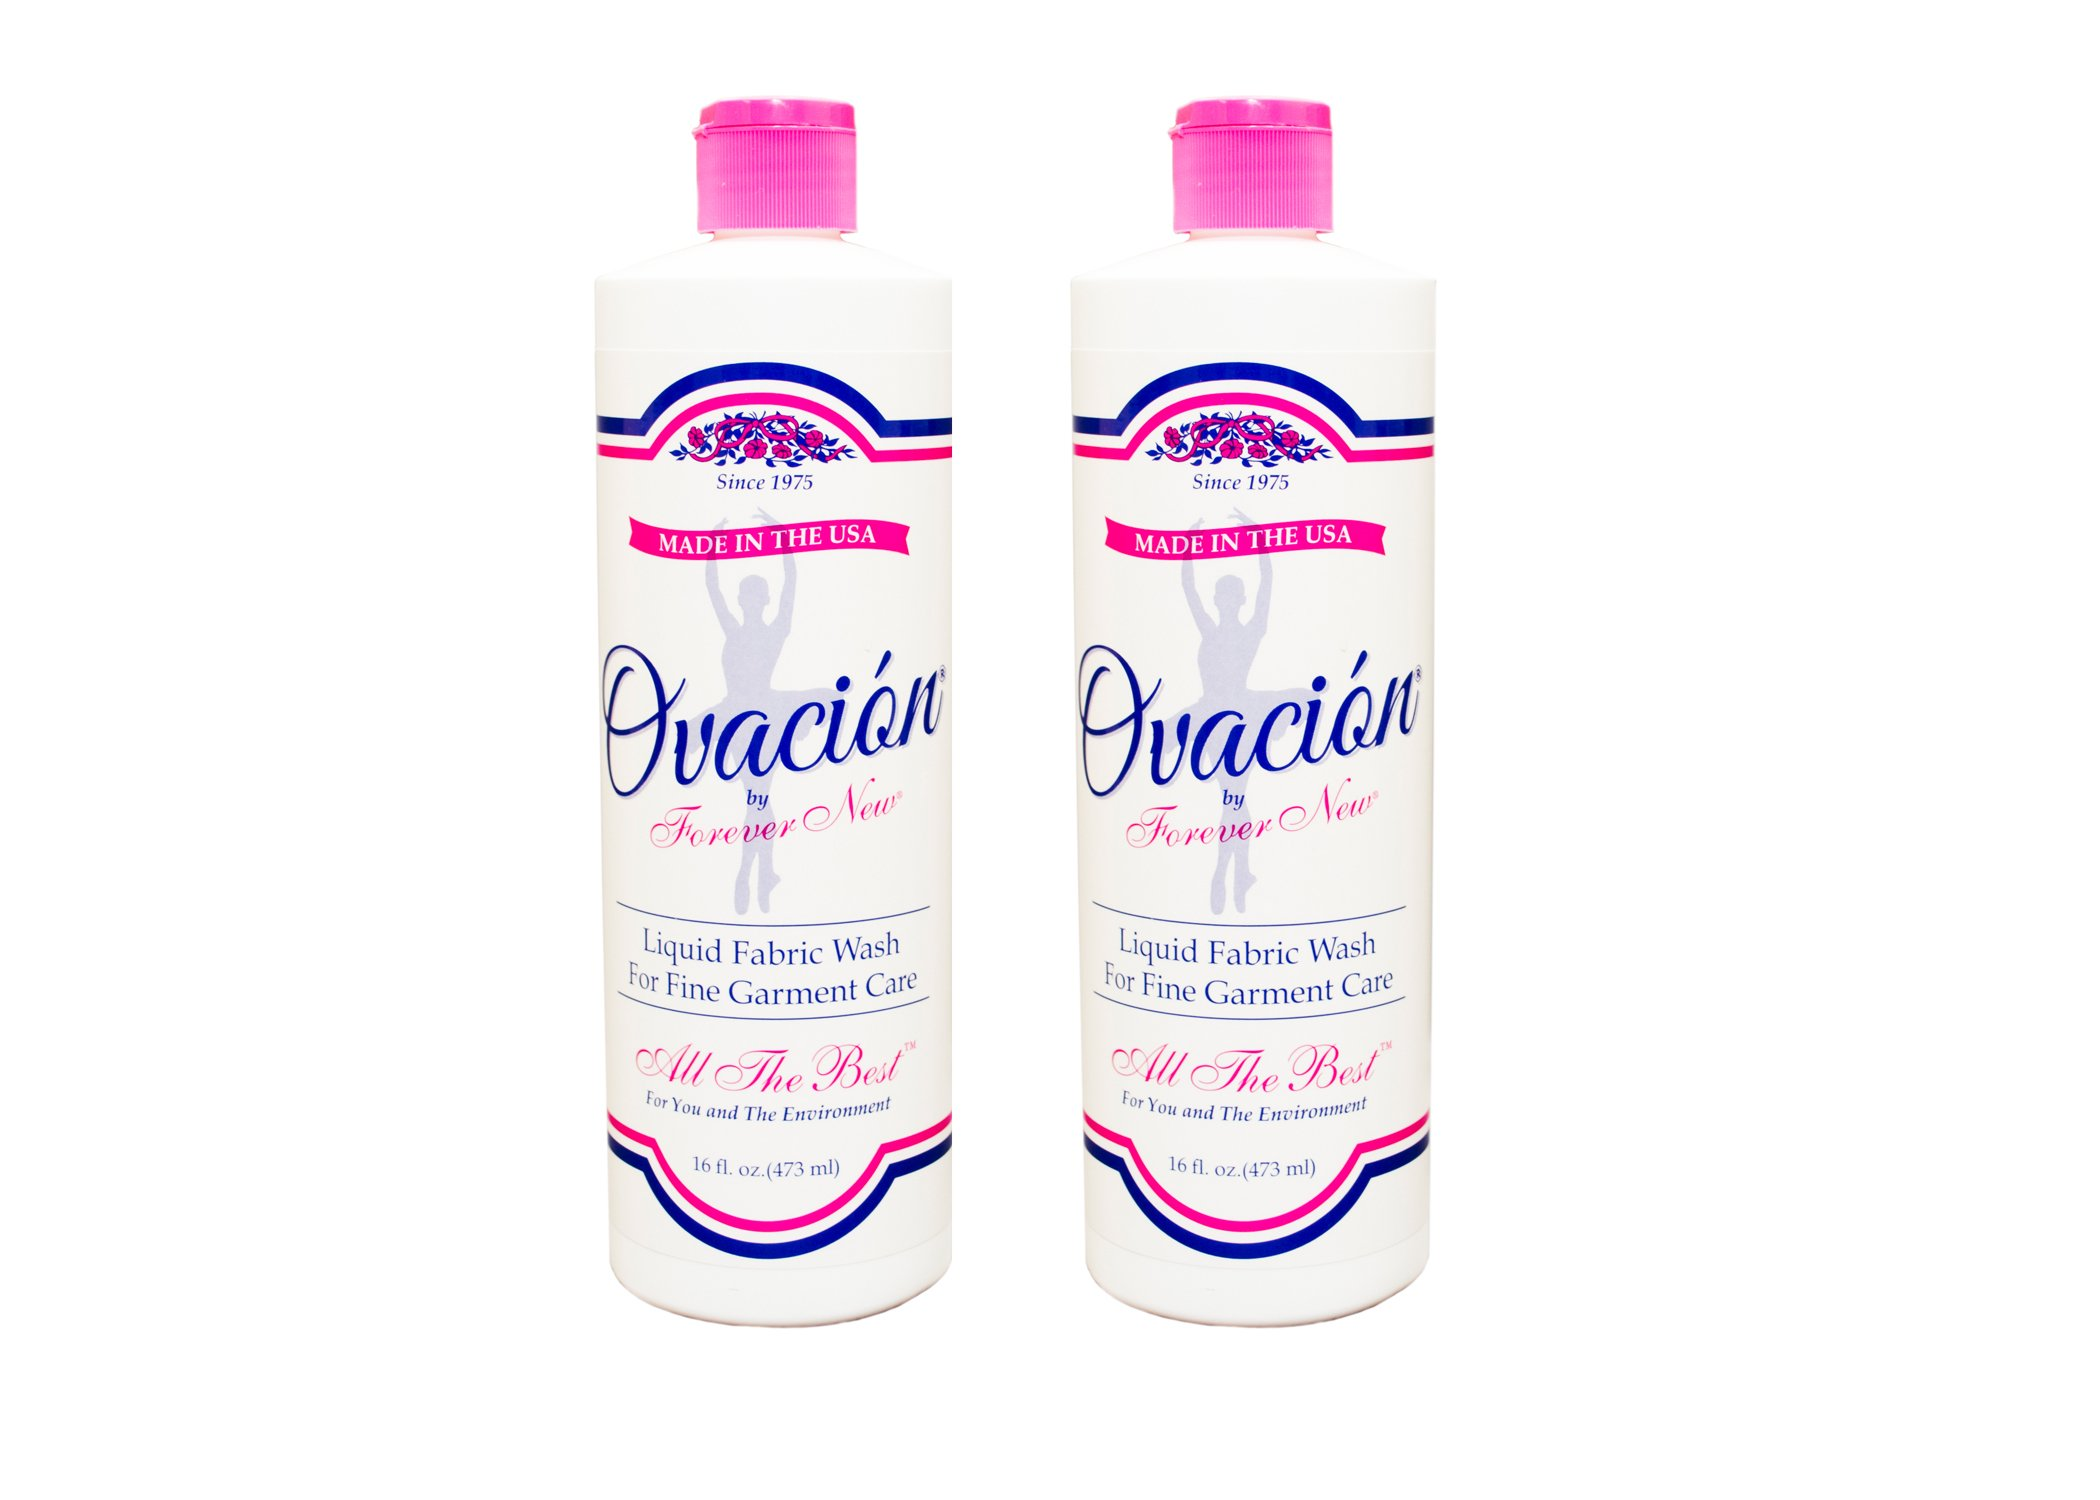 Ovacion by Forever New Liquid Fabric Care Wash 2 Pack (32oz Total)